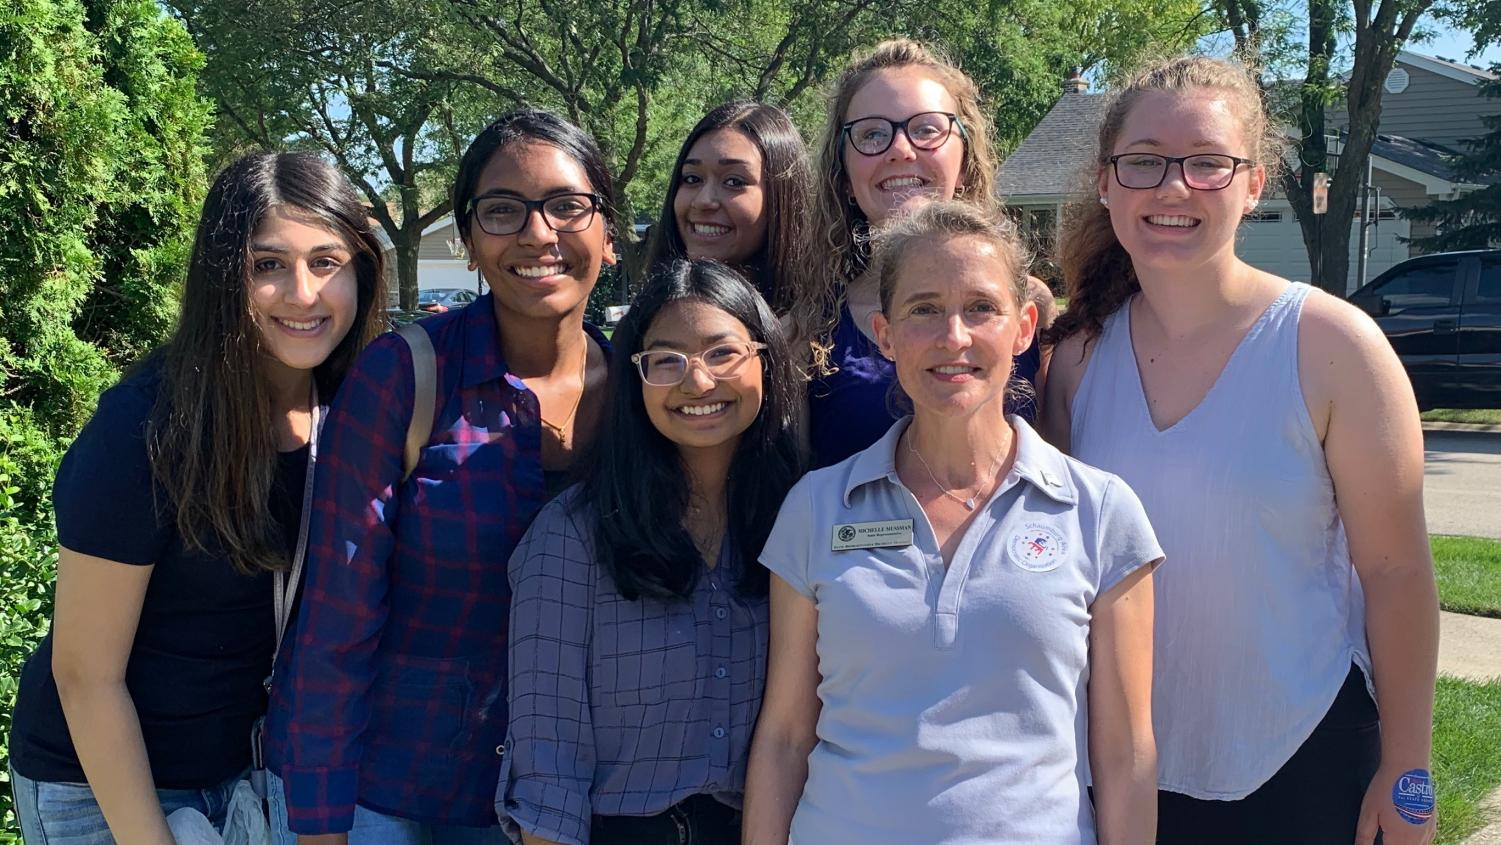 Noor Pasha, Araha Uday, Esha Patel, Payton McGraw, Maura Zimmerman, Riya Shah pose for a photo with Illinois Representative Michelle Mussman. Photo credits to Araha Uday.